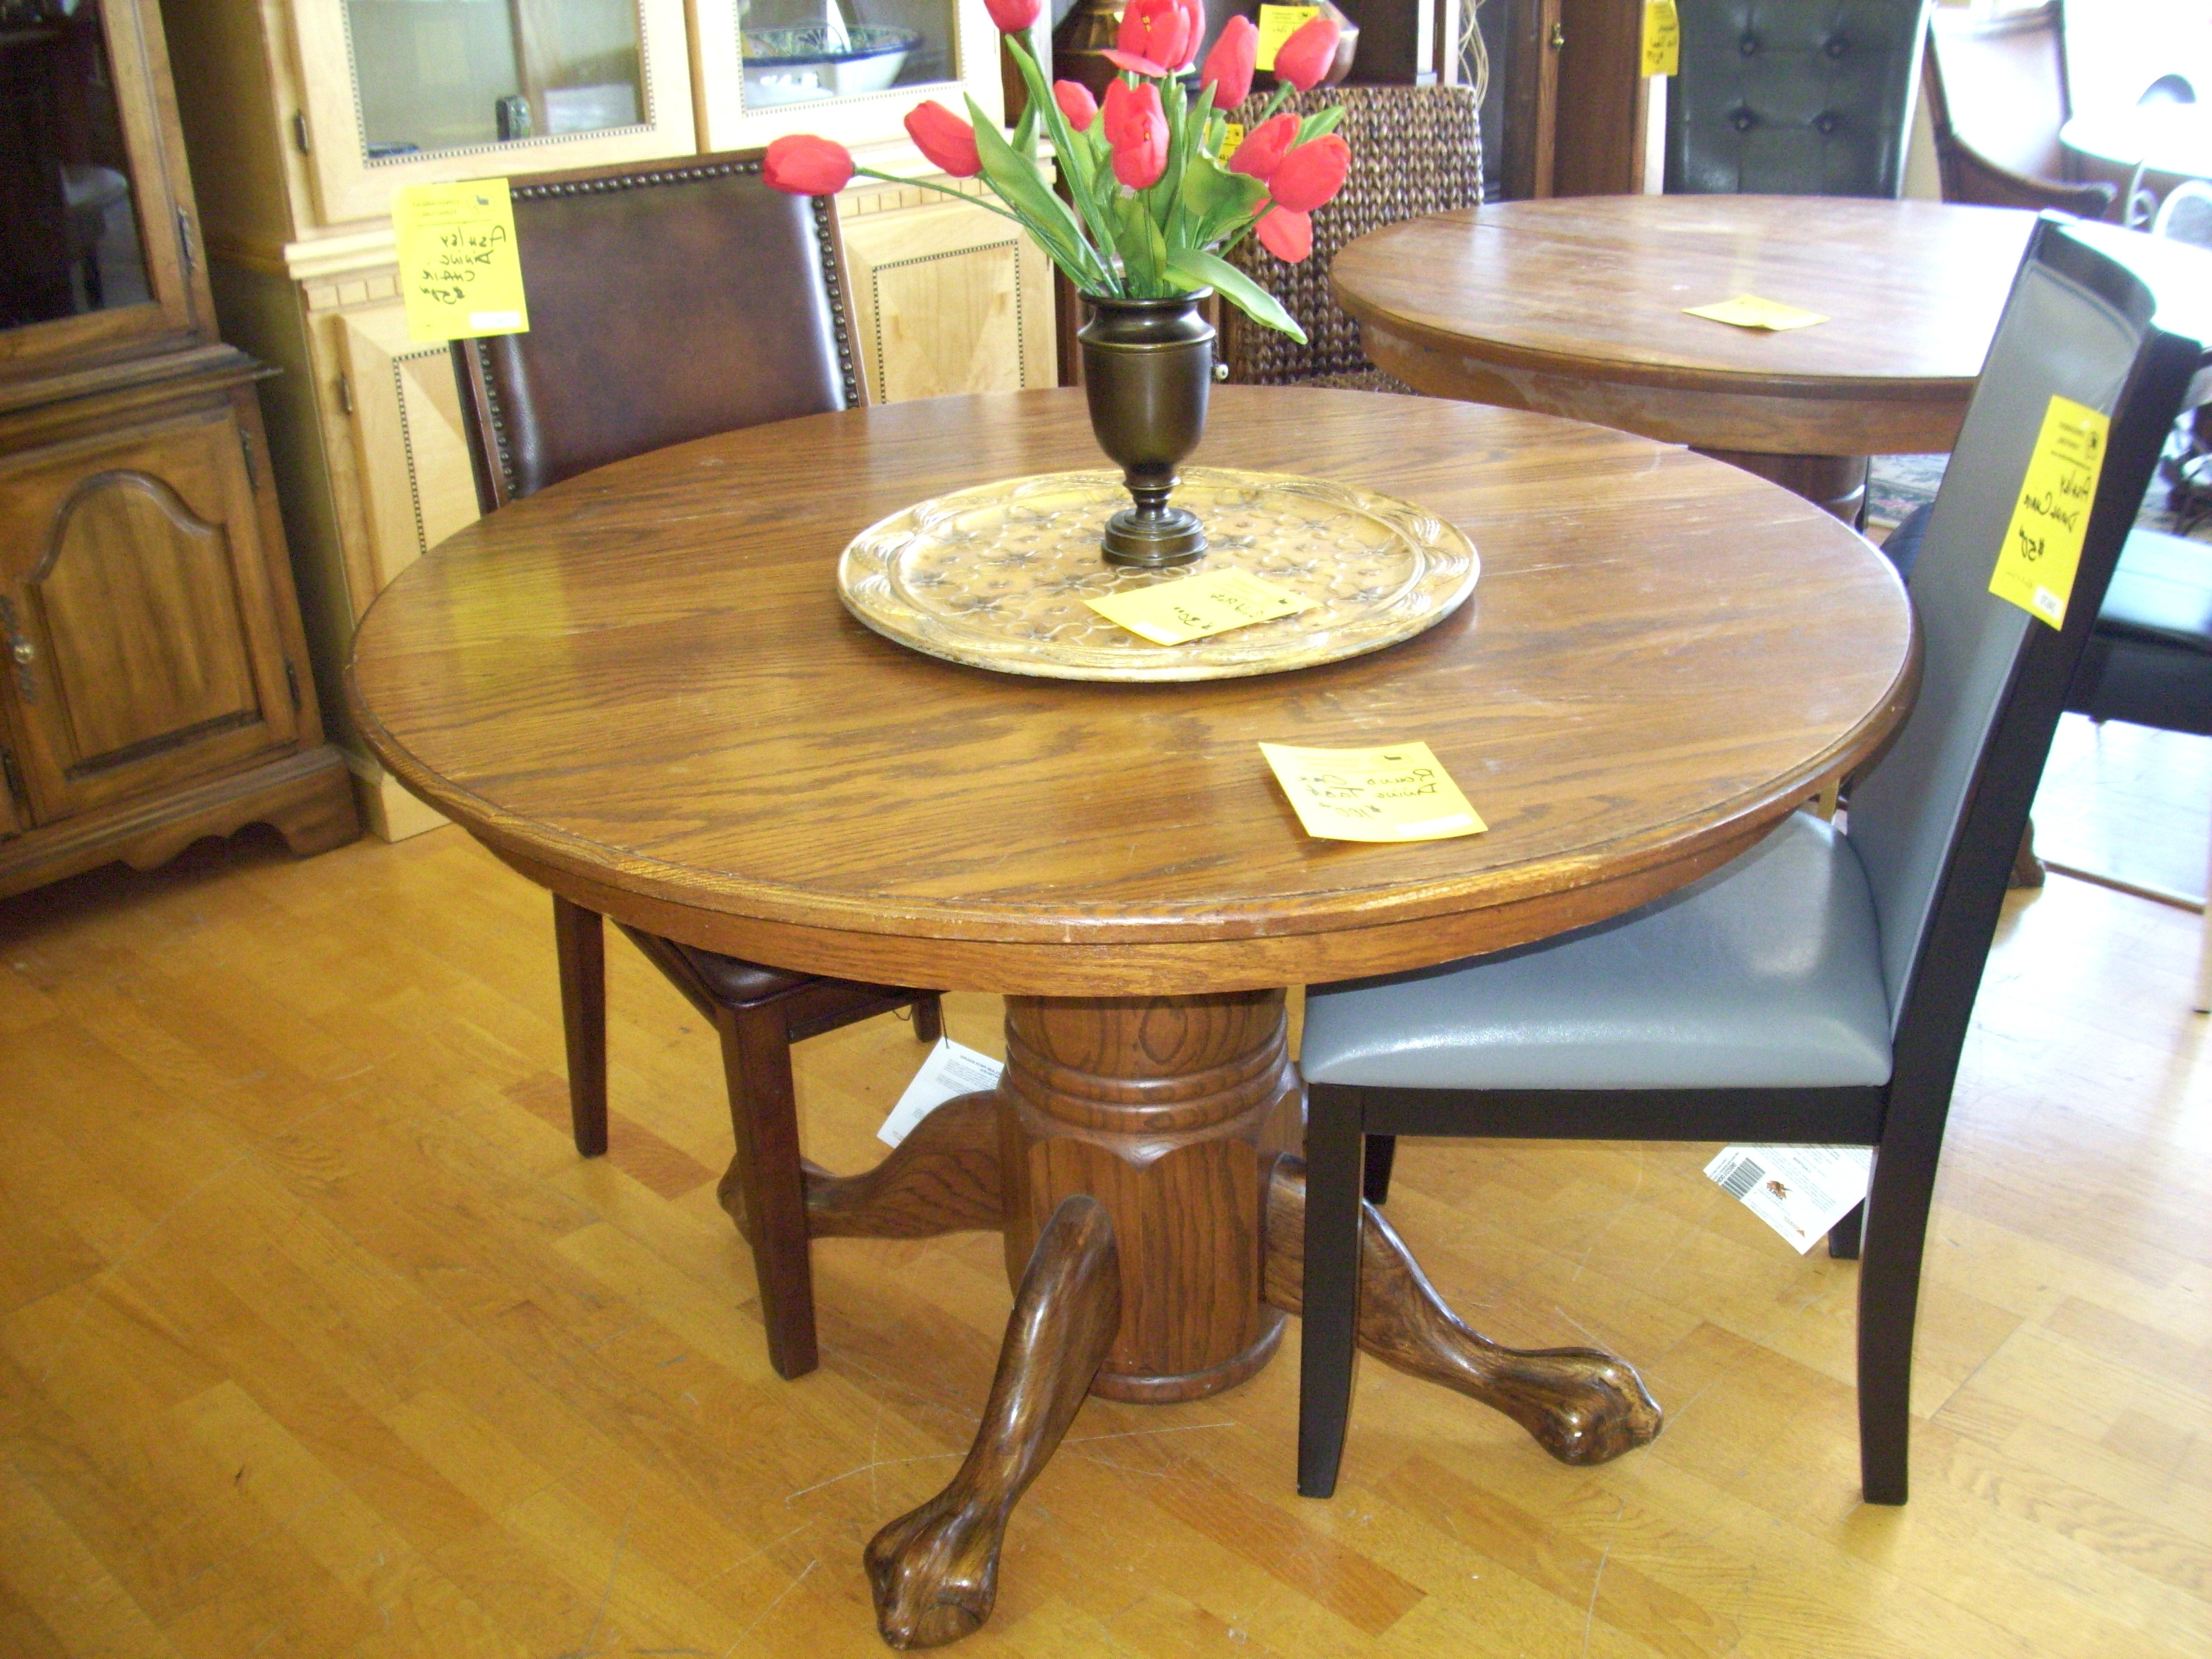 Most Popular 45 Inch Round Glass Top Dining Table Image Ideas With Regard To Glass Top Oak Dining Tables (View 23 of 25)